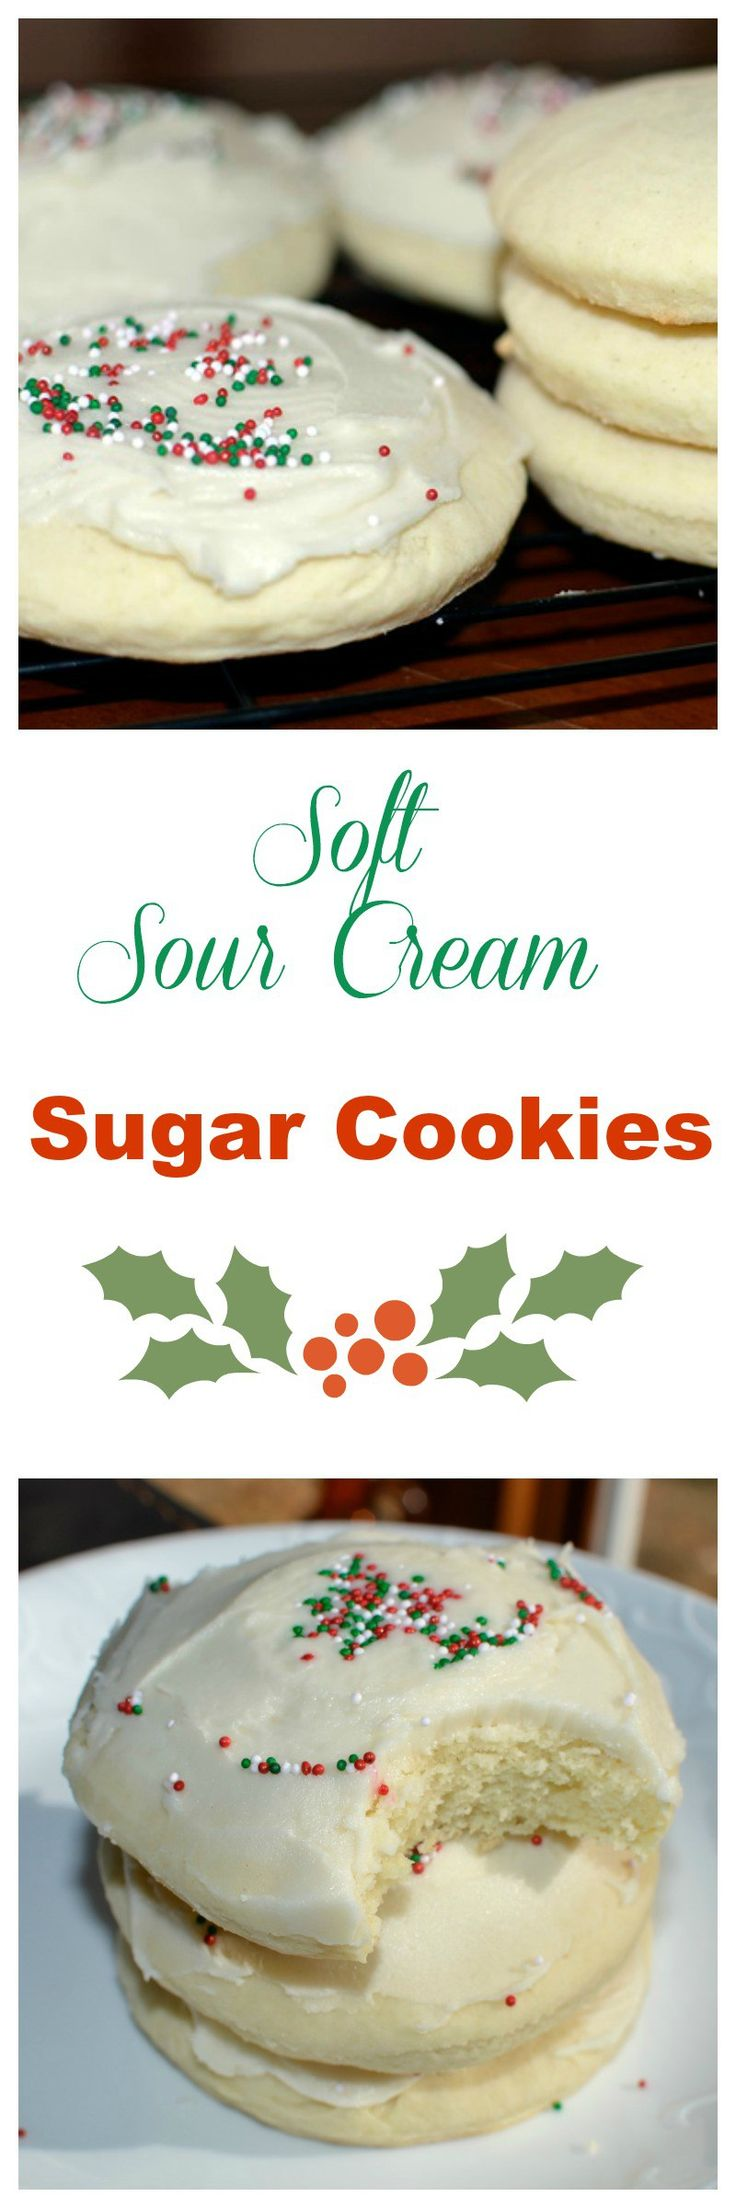 Soft Sour Cream Sugar Cookies Recipe! If You Give a Mouse a Christmas Cookie is available on Amazon.com 11/25/16 to stream. Don't miss it! #ad #Amazon